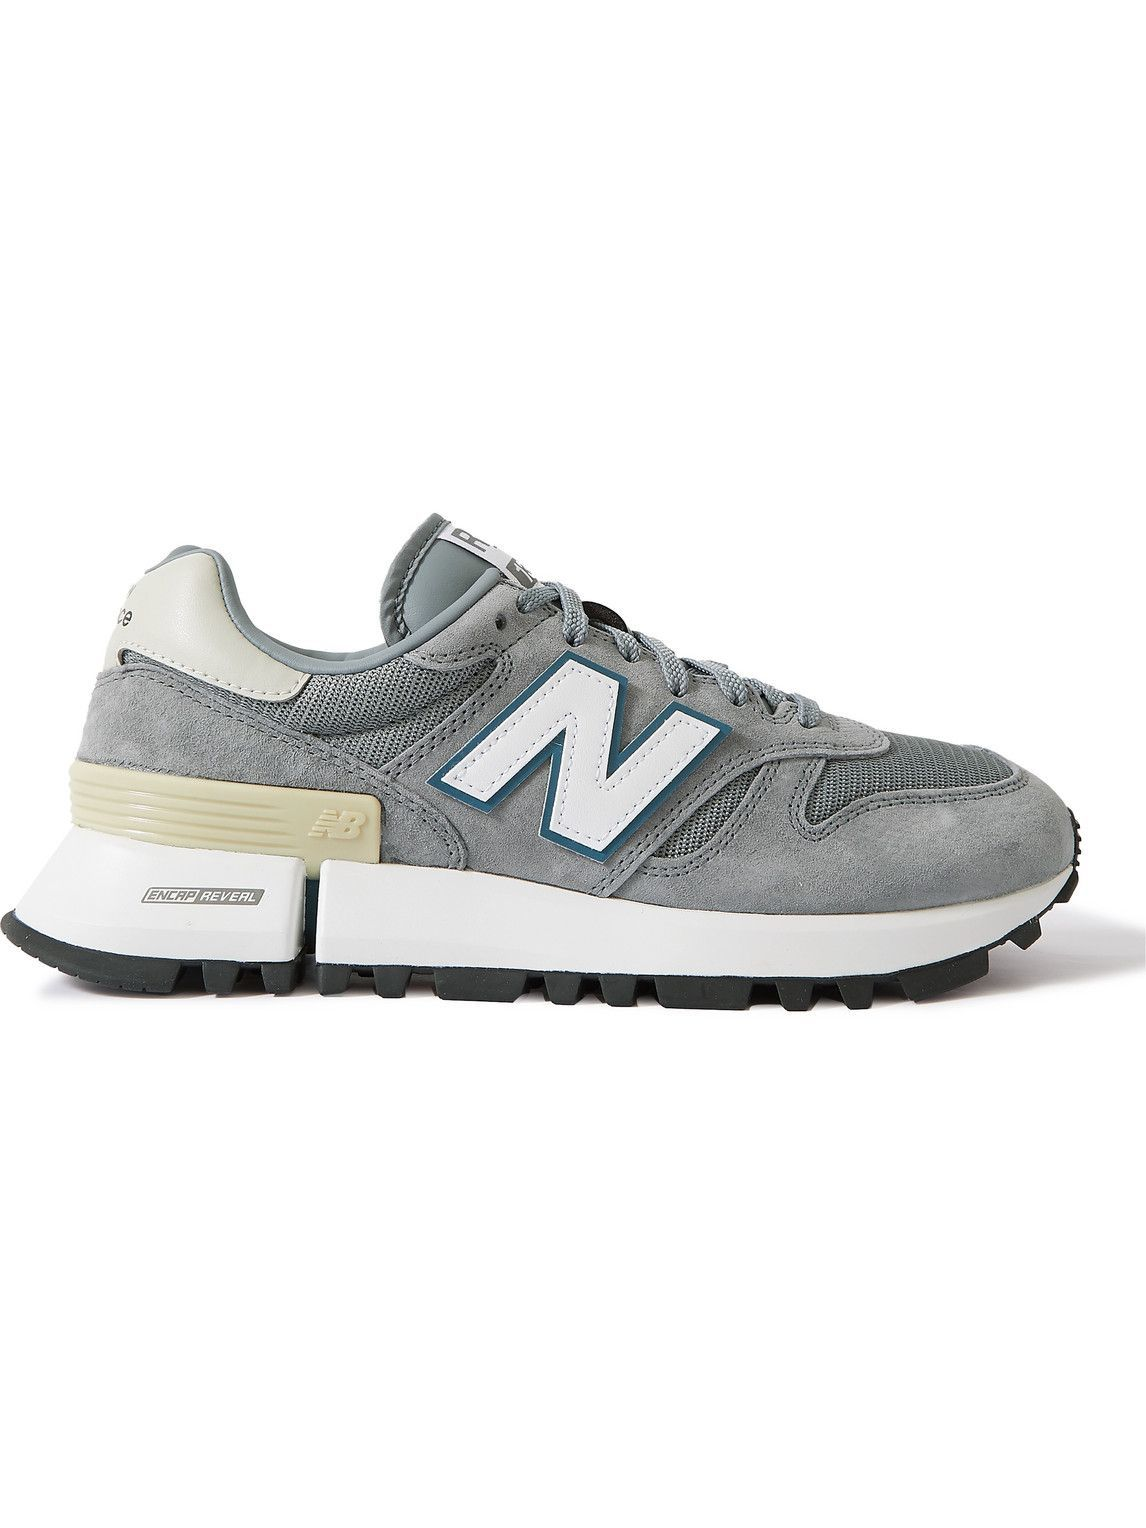 Photo: New Balance - RC_1300 Suede, Mesh and Leather Sneakers - Gray